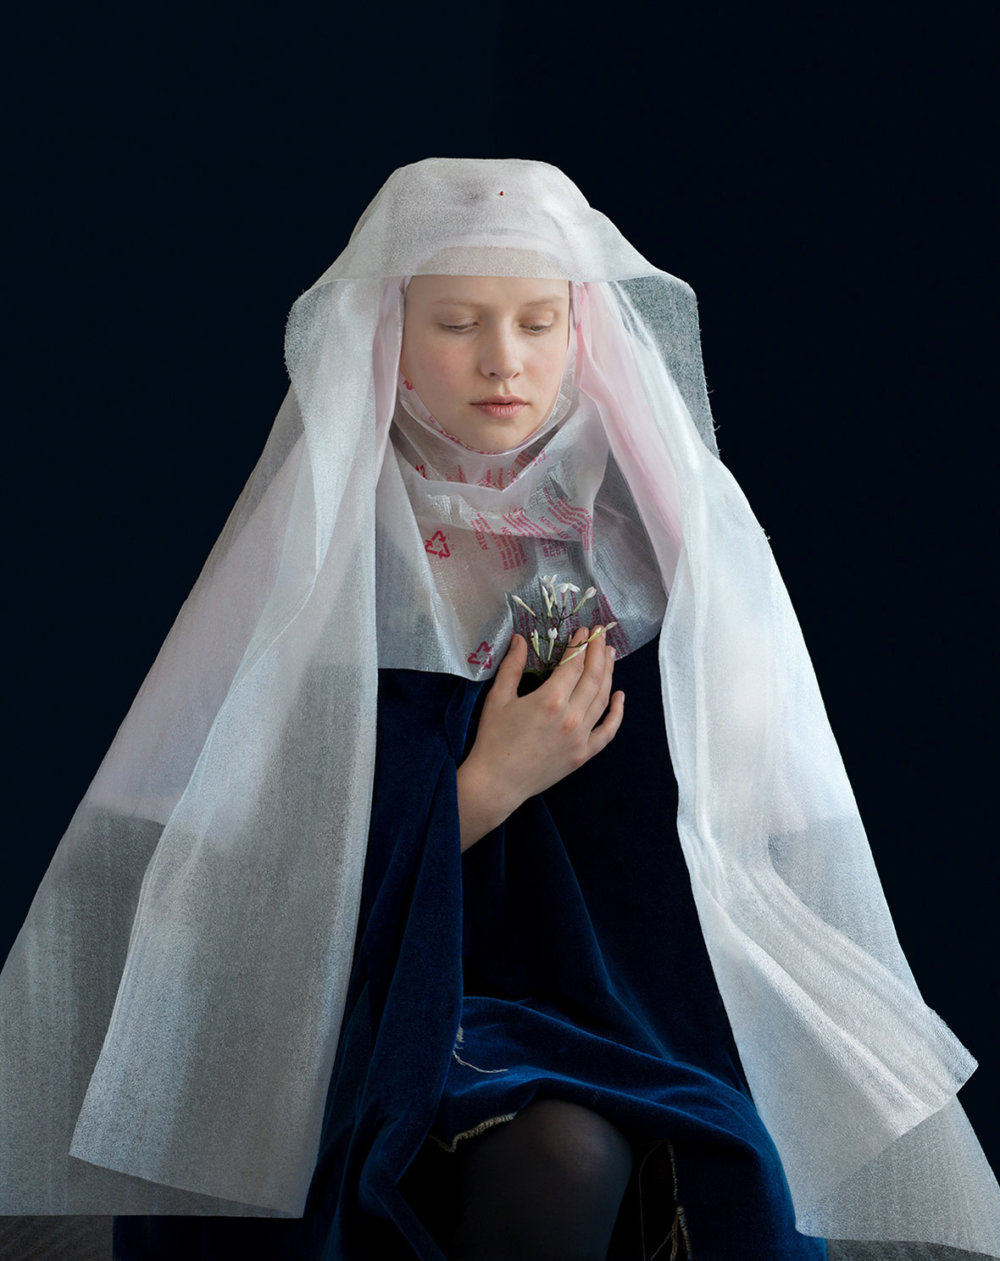 Discarded Packaging Recycled Into Renaissance Costumes By Suzanne Jongmans 5